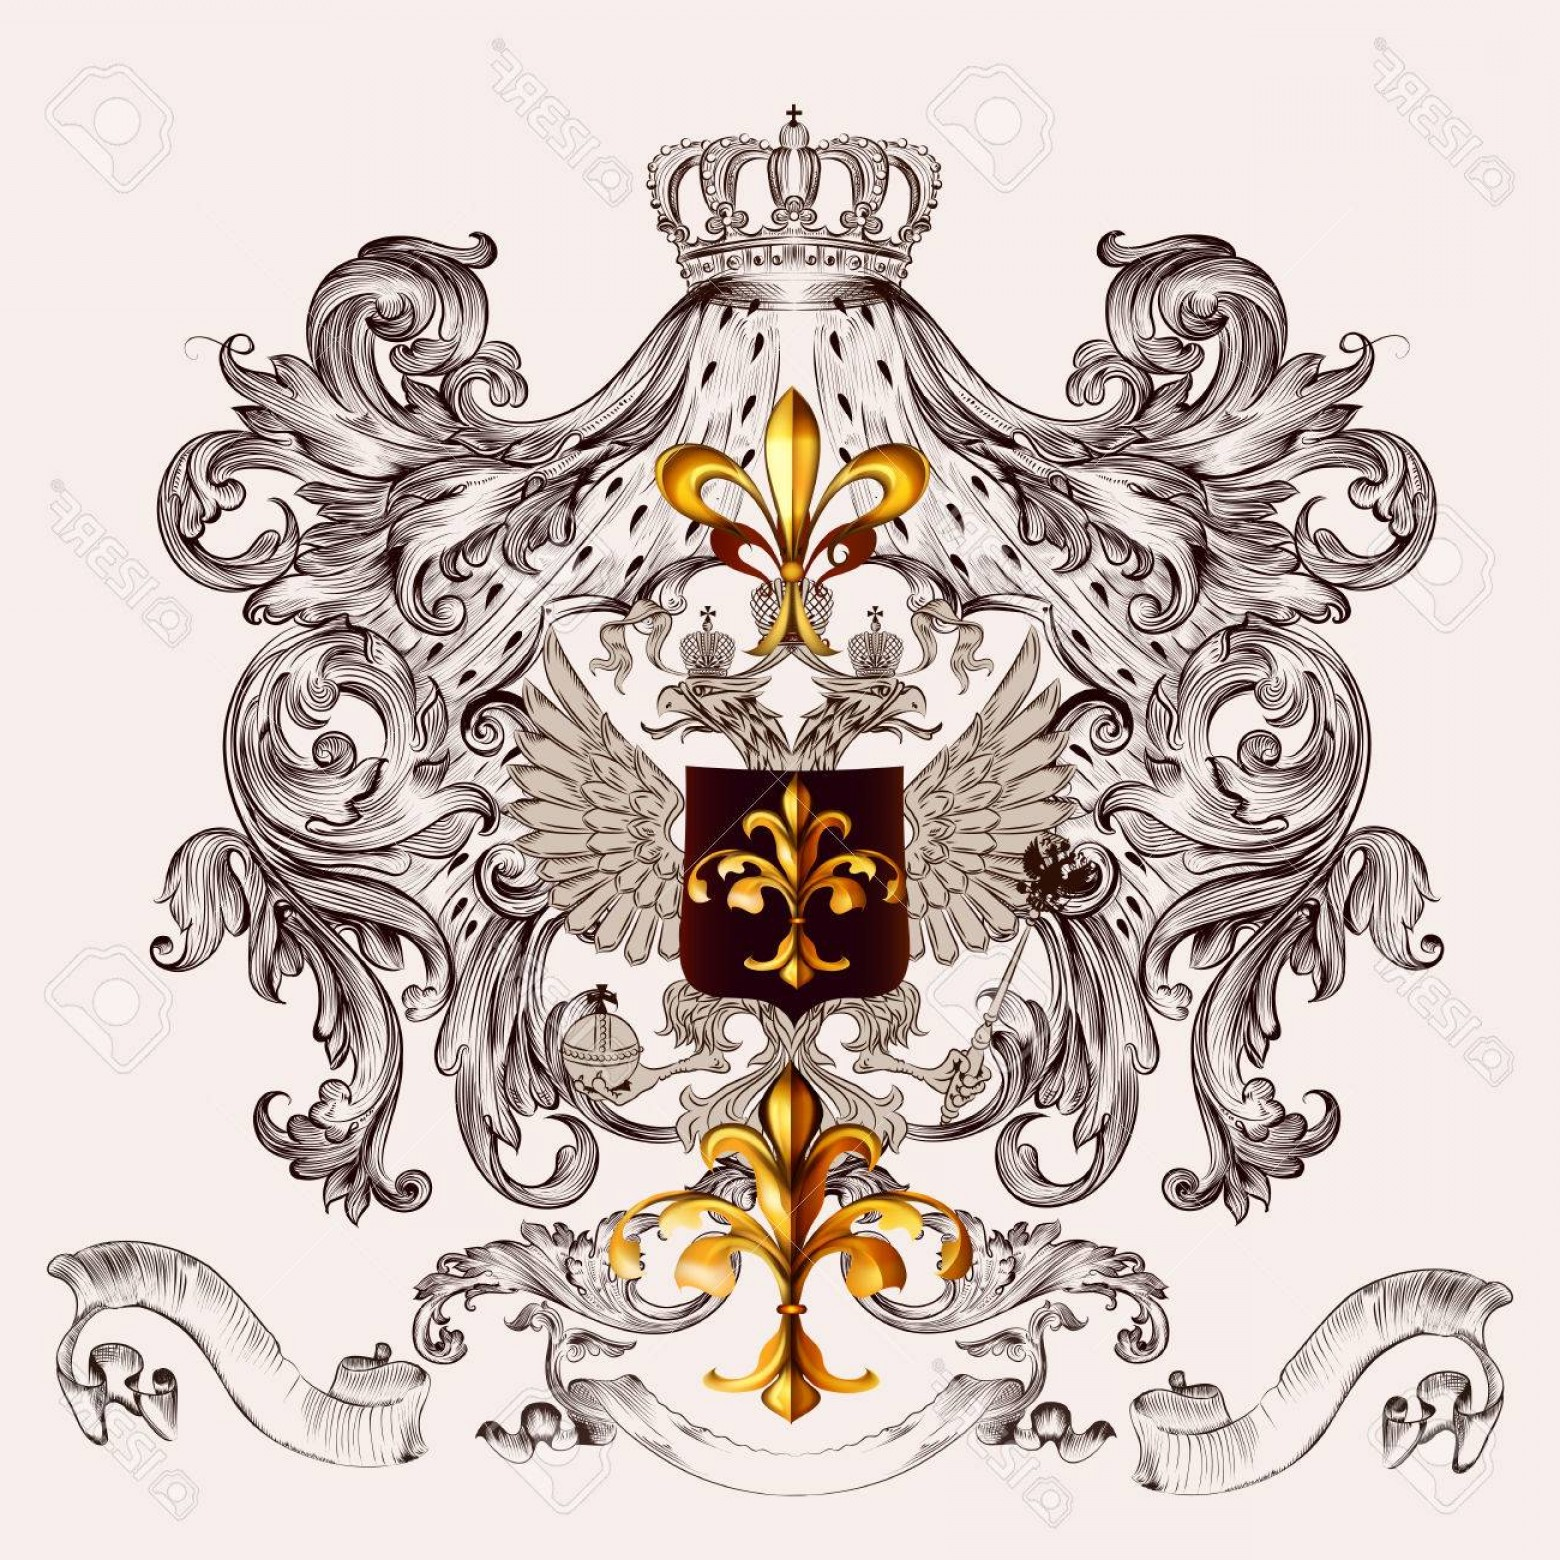 Heraldic Vector Ornaments: Photostock Vector Heraldic Vector Design With Shield Eagle Coat Of Arms And Ornaments